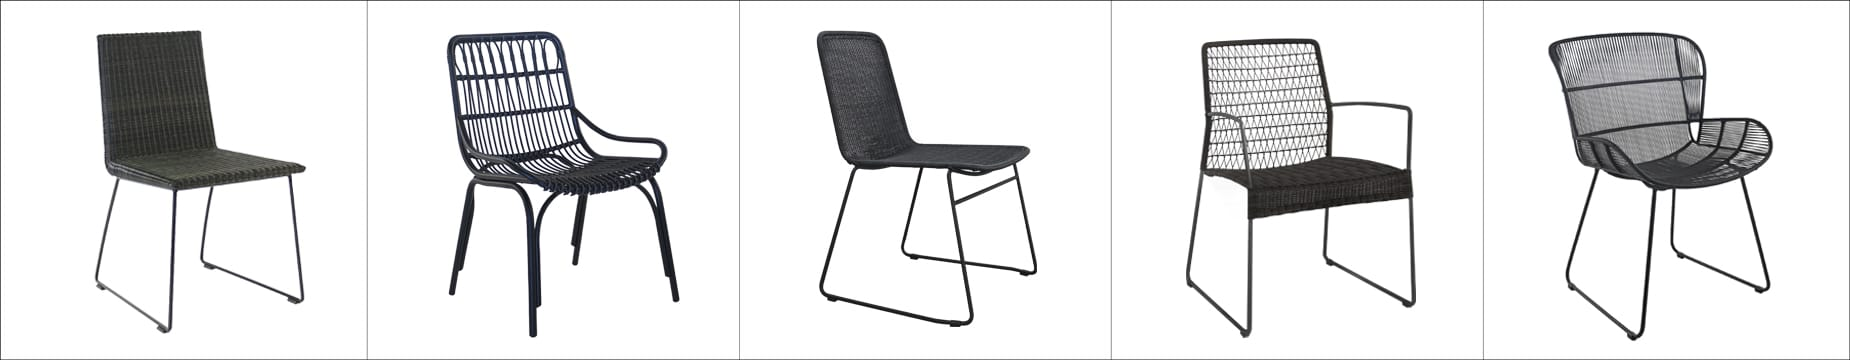 Top 5 Wicker Chairs. Black wicker dining chair examples.